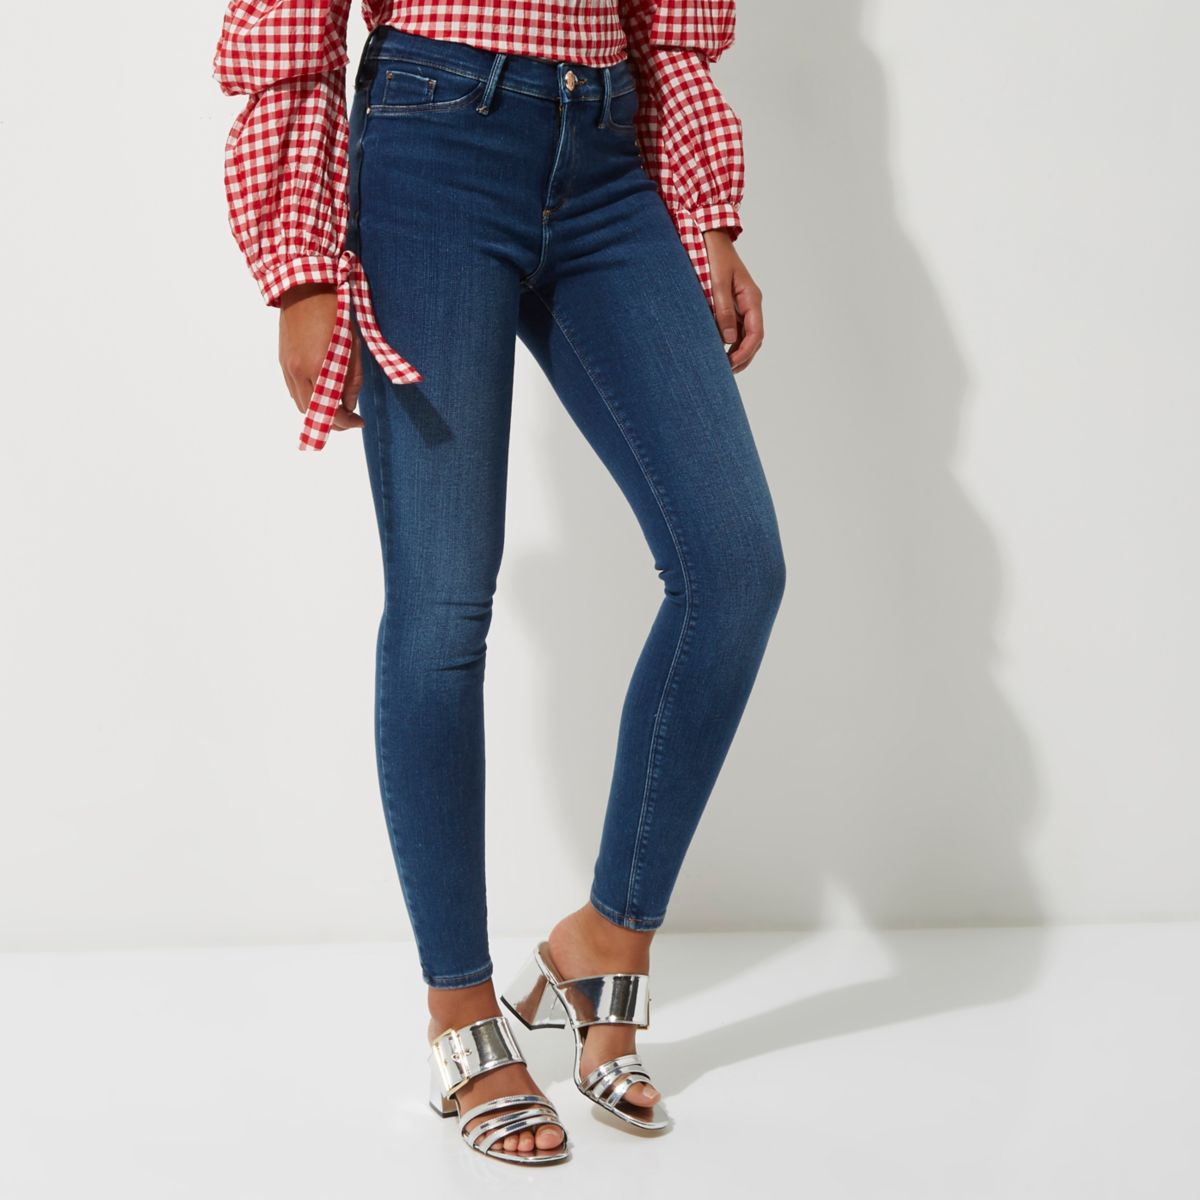 Molly – Satin-Jeggings in mittelblauer Waschung